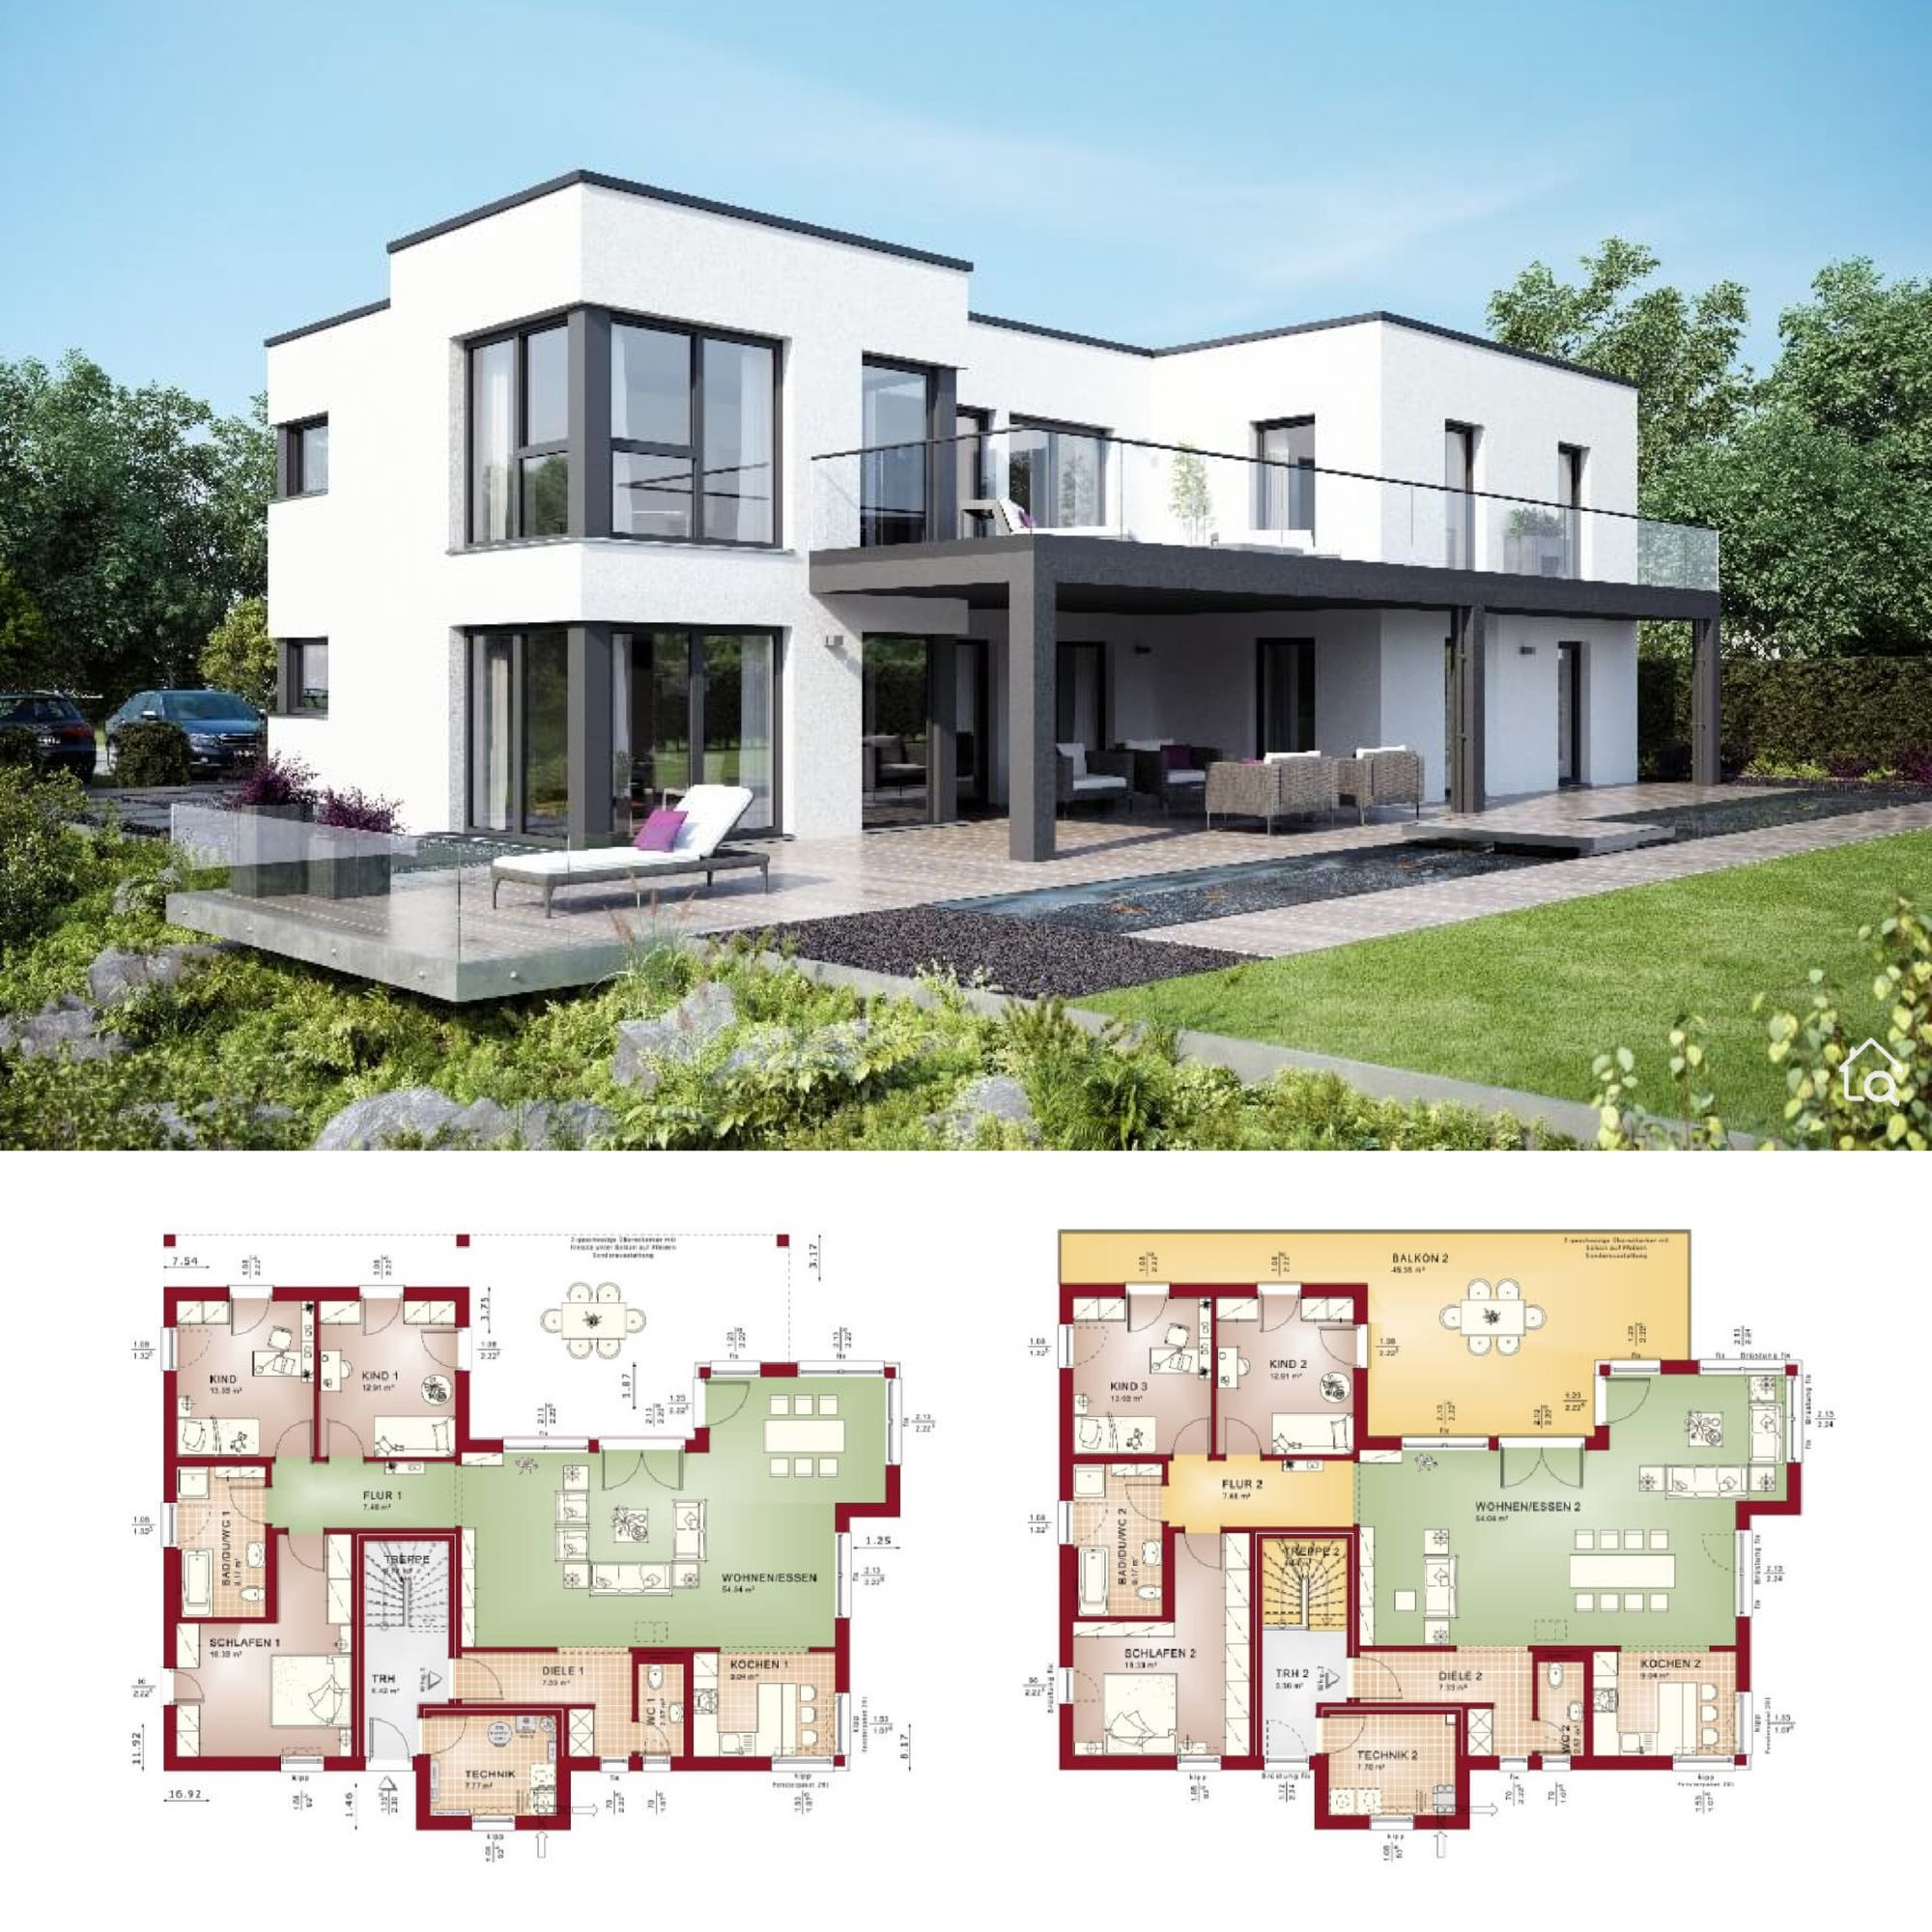 Two Family House Plans With 2 Story Flat Roof Modern Contemporary European Architecture Design In 2020 Zweifamilienhaus Haus Bauhausstil